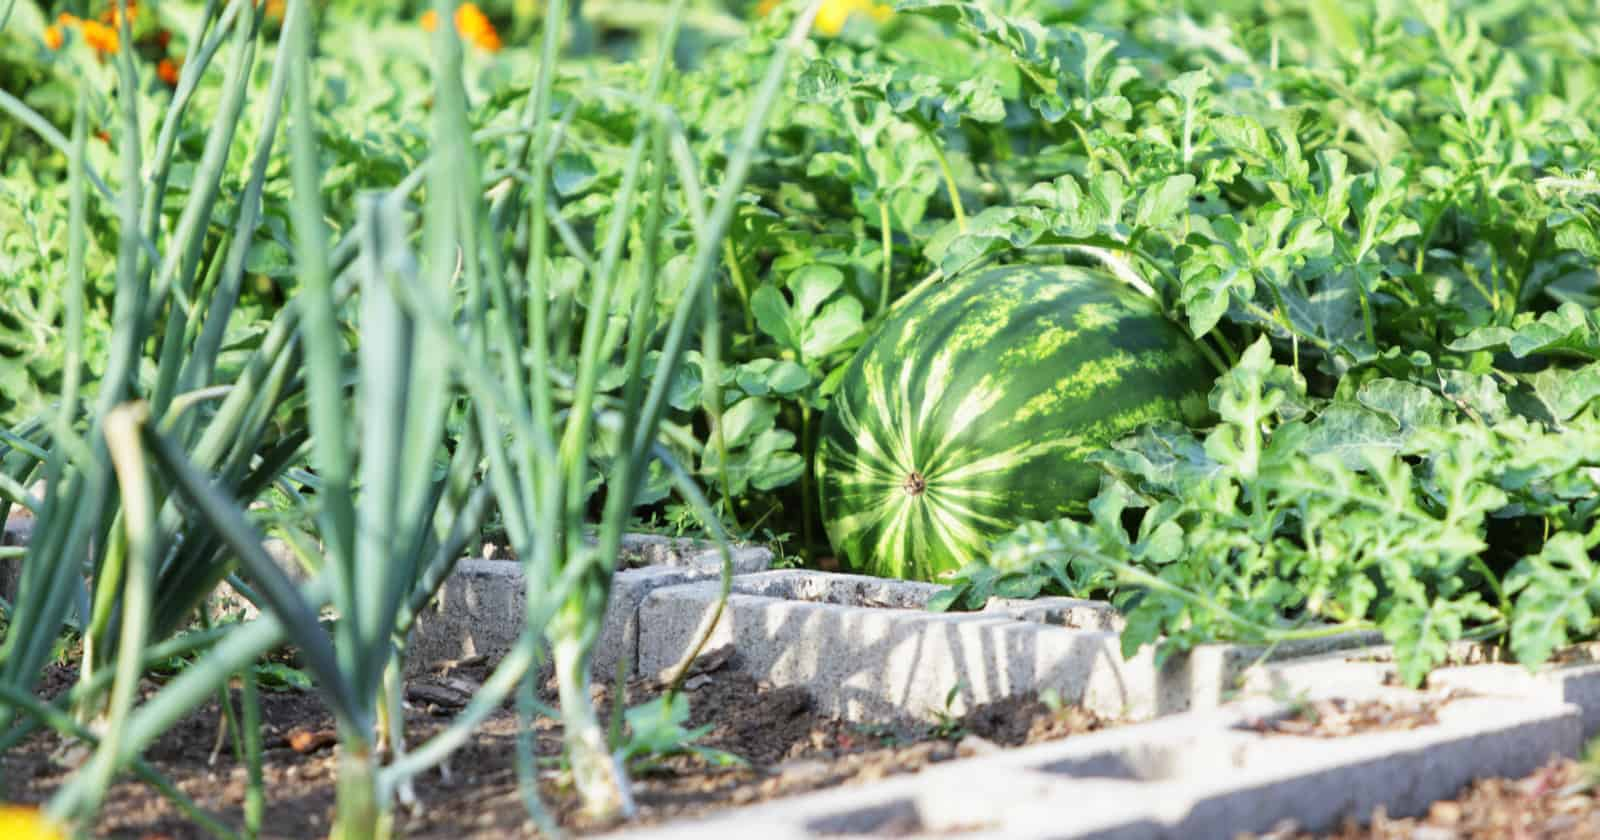 """If you looked at that title and thought, """"Ewww, that doesn't sound very classy!"""" then think again. Cinder blocks are actually incredibly versatile. With a little creativity, they make the perfect foundation for a raised garden bed."""